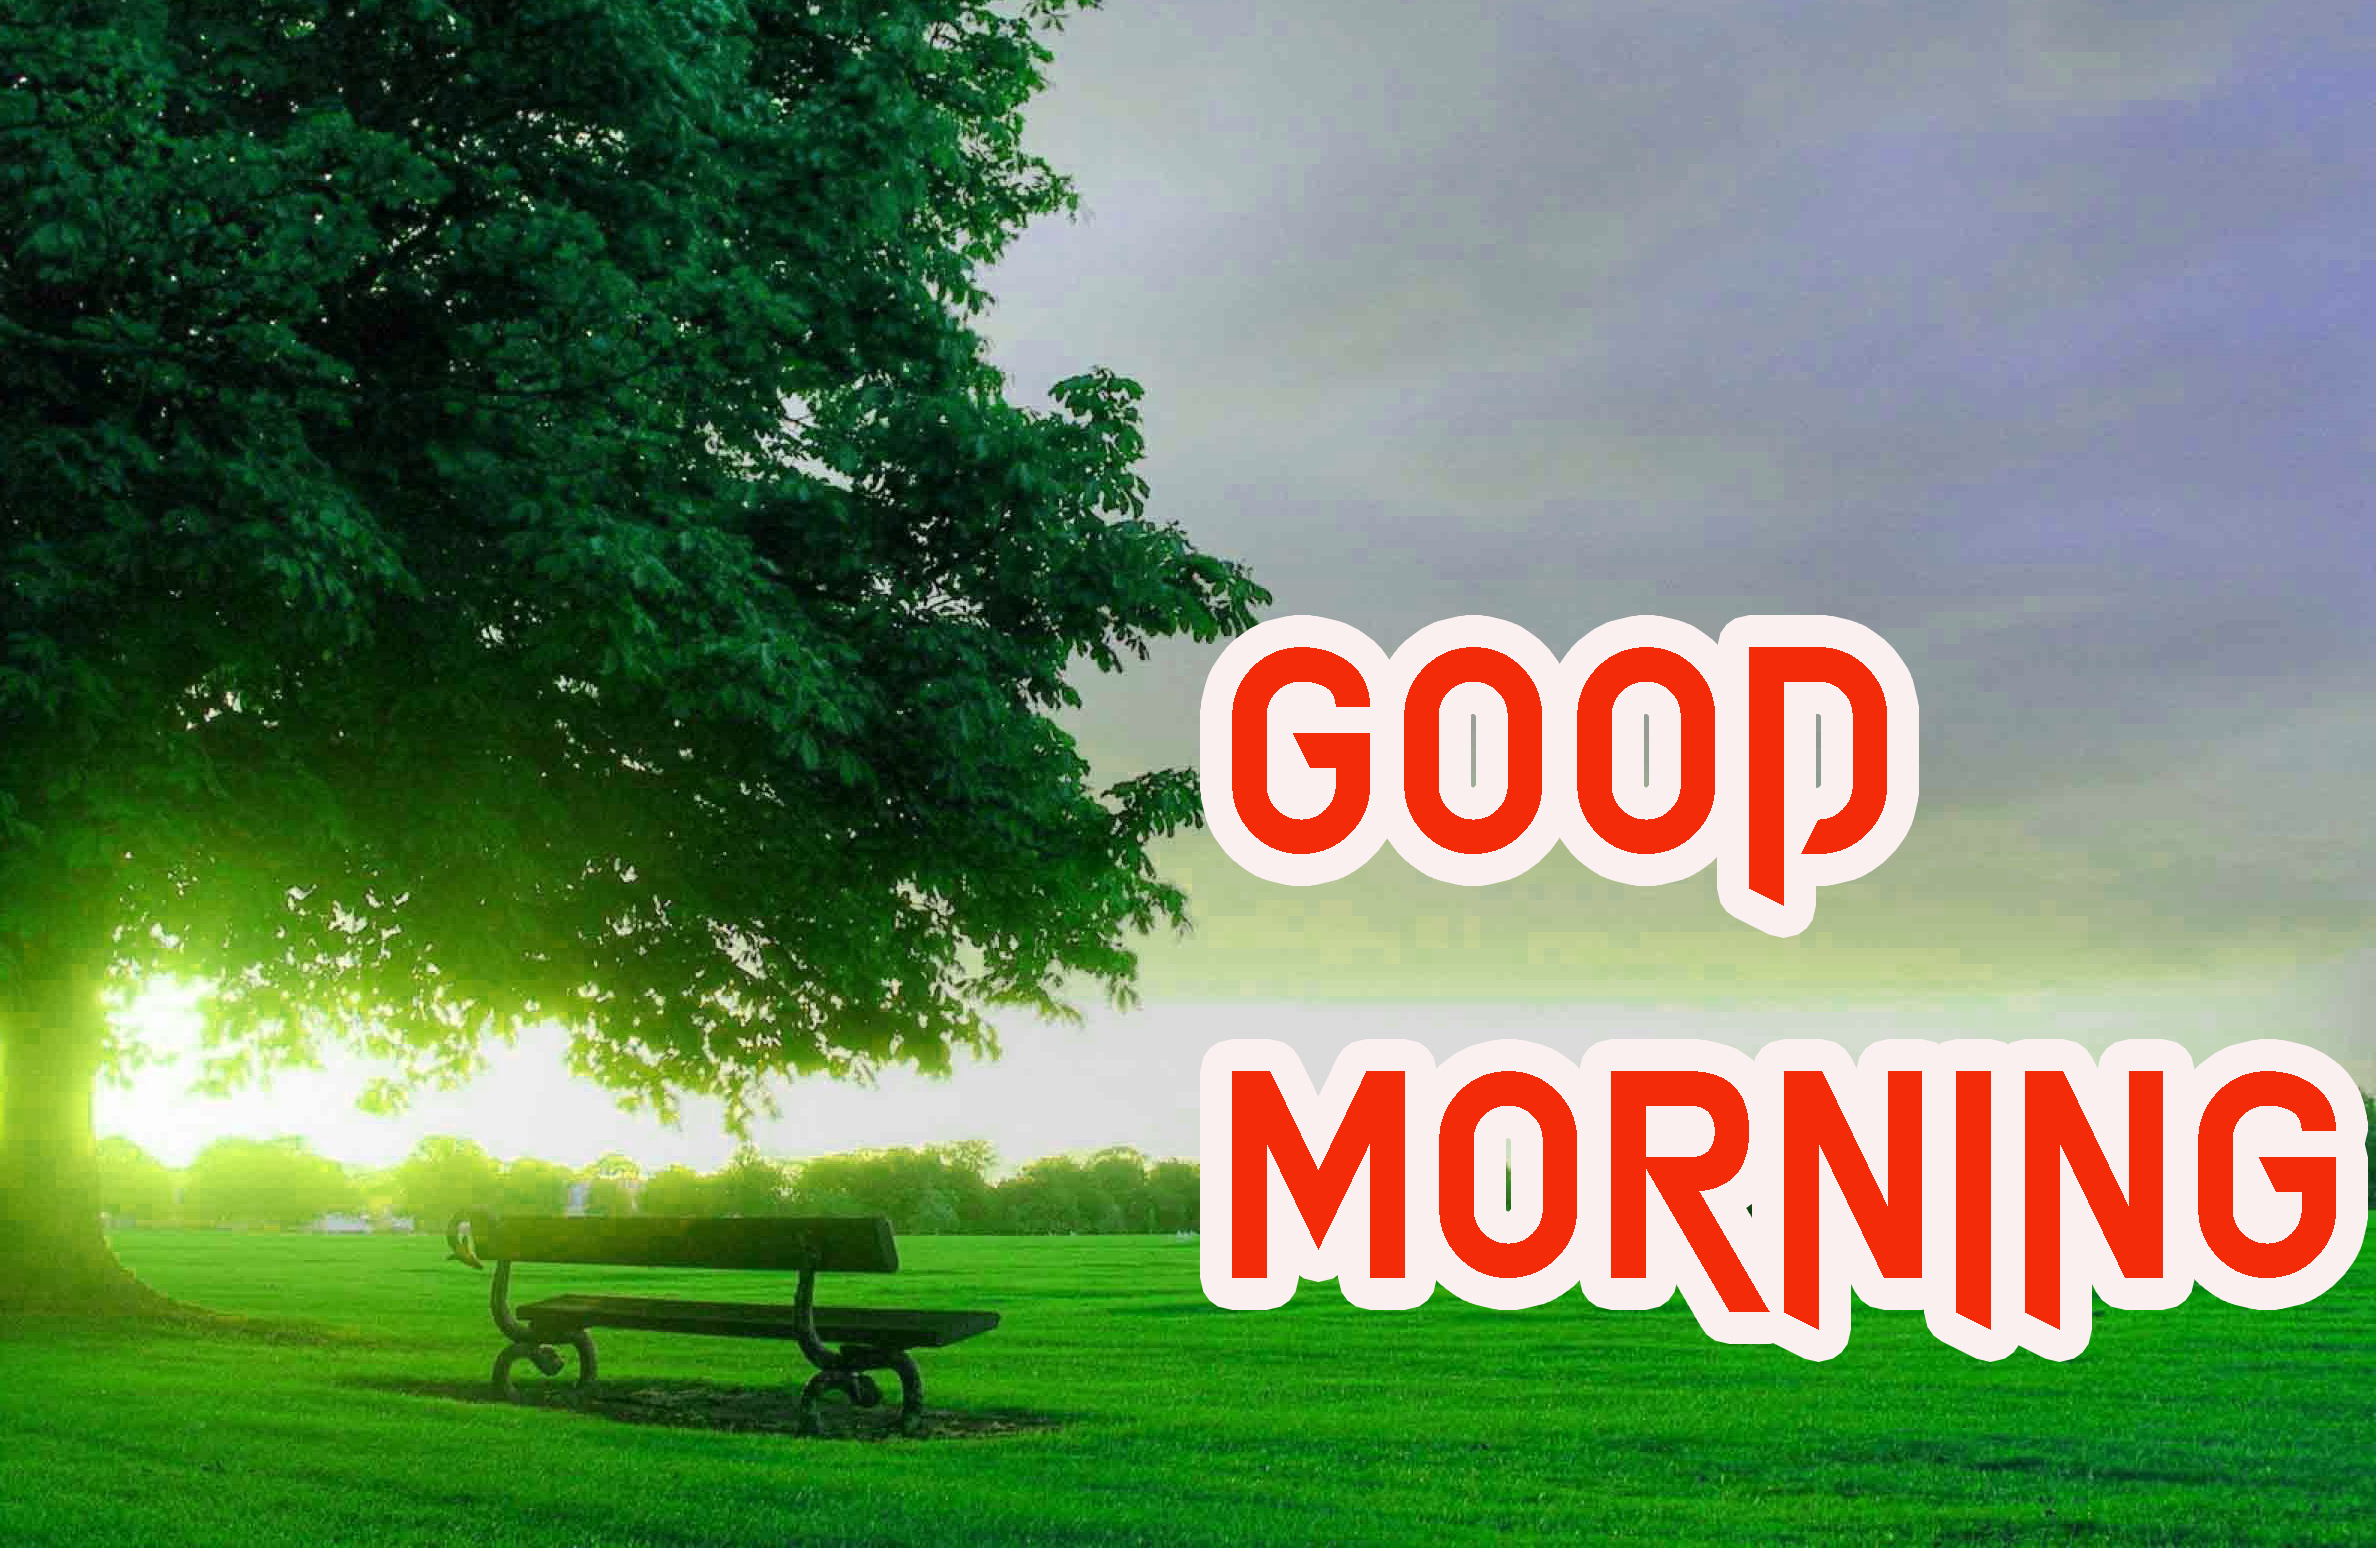 GOOD MORNING IMAGE PHOTO WALLPAPER FREE HD DOWNLOAD